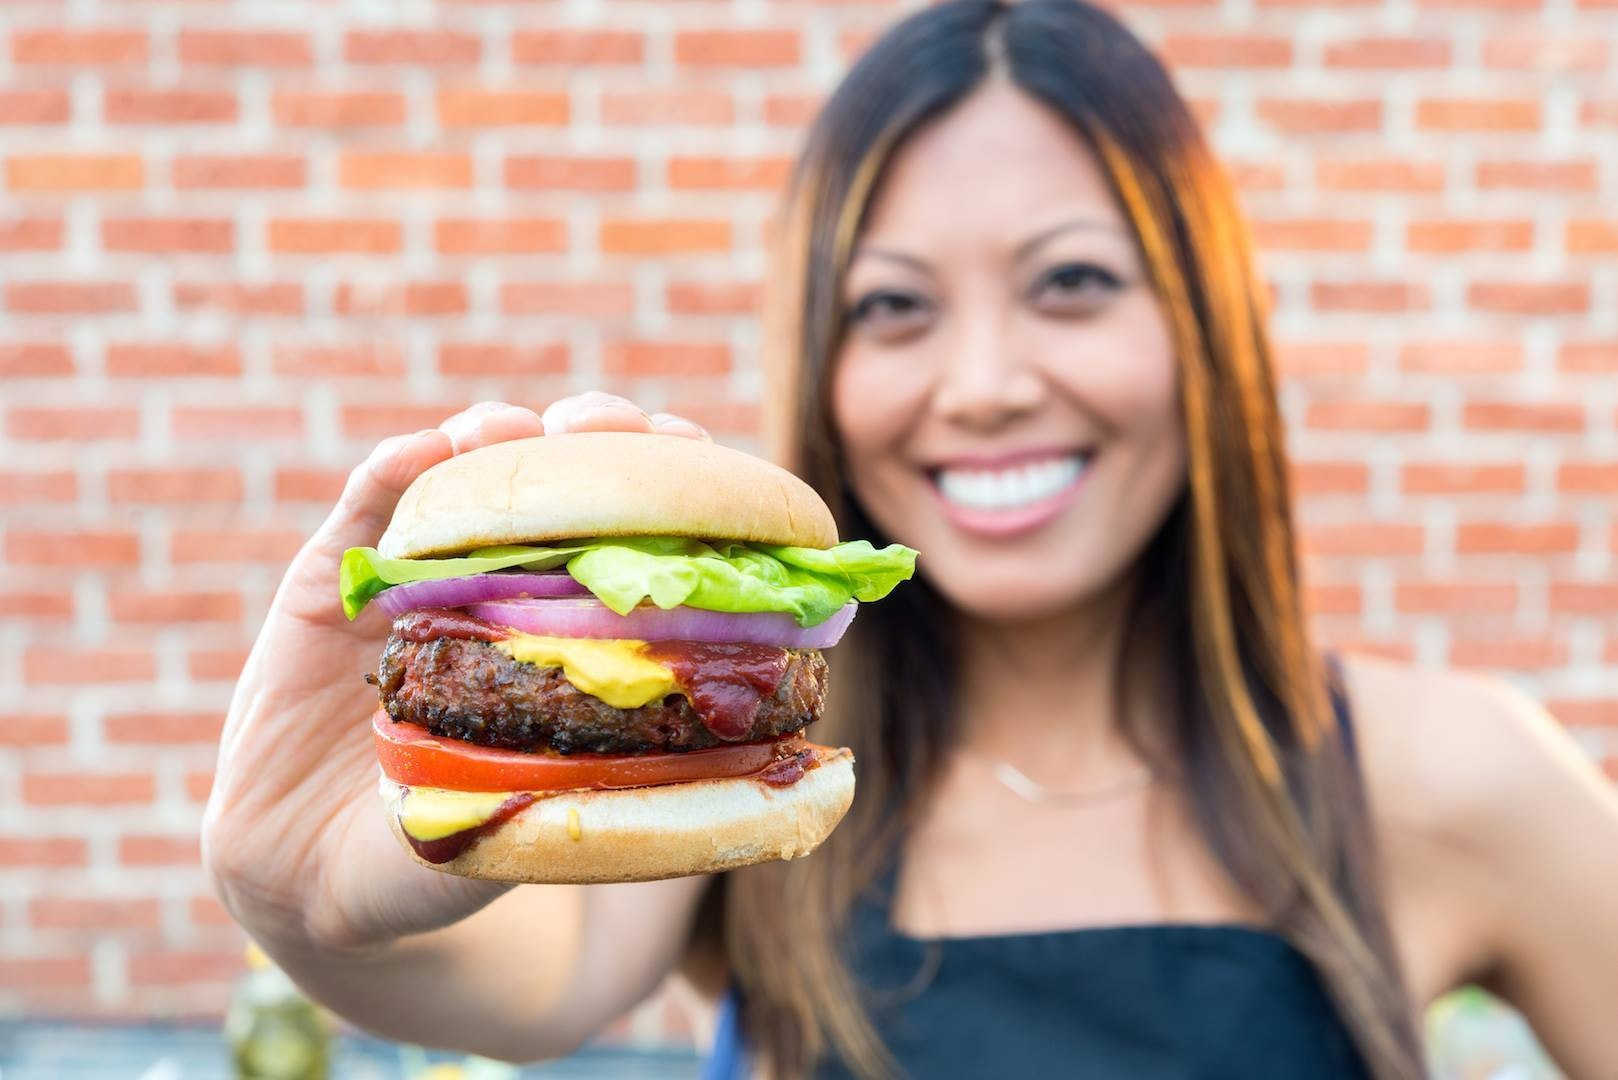 A woman holds the Beyond Burger, a patty made from plant proteins by meat alternative producer Beyond Meat.